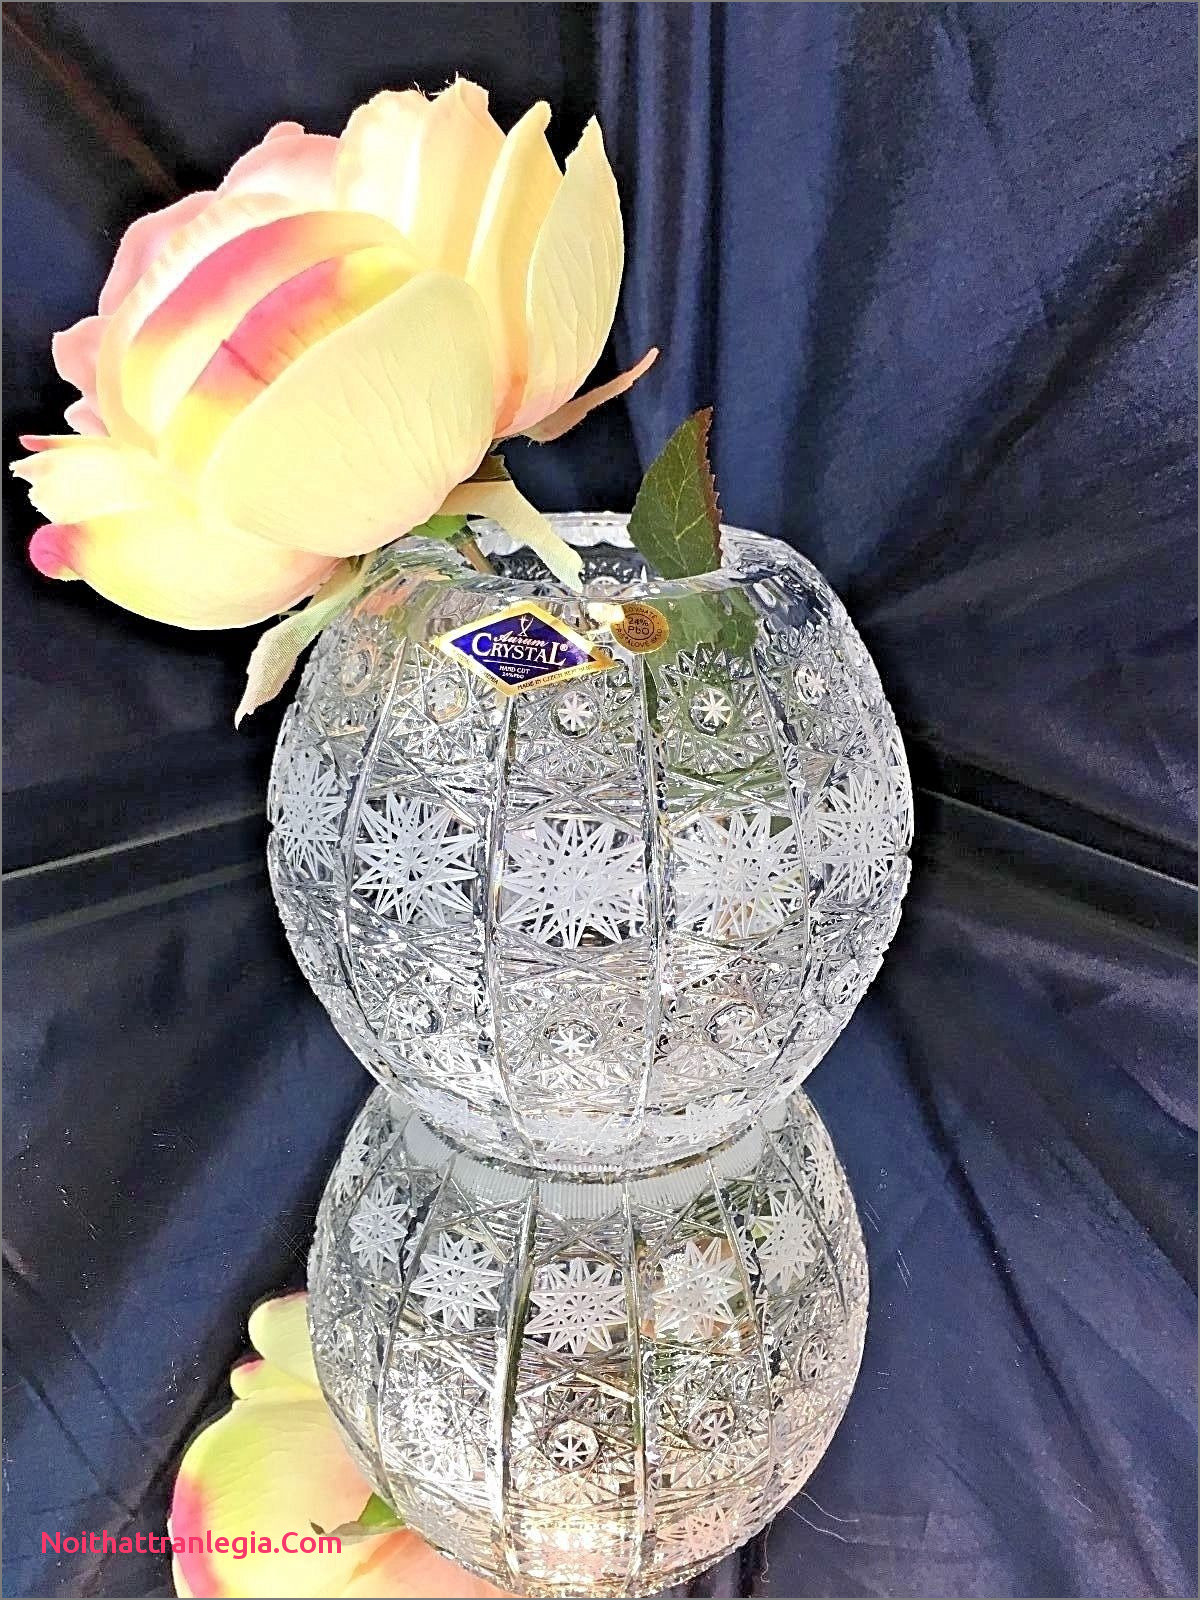 fenton glass vase hand painted of 20 cut glass antique vase noithattranlegia vases design in tosimplyshop crystal glass vase european vintage hand cut 5 bohemia aurum crystal